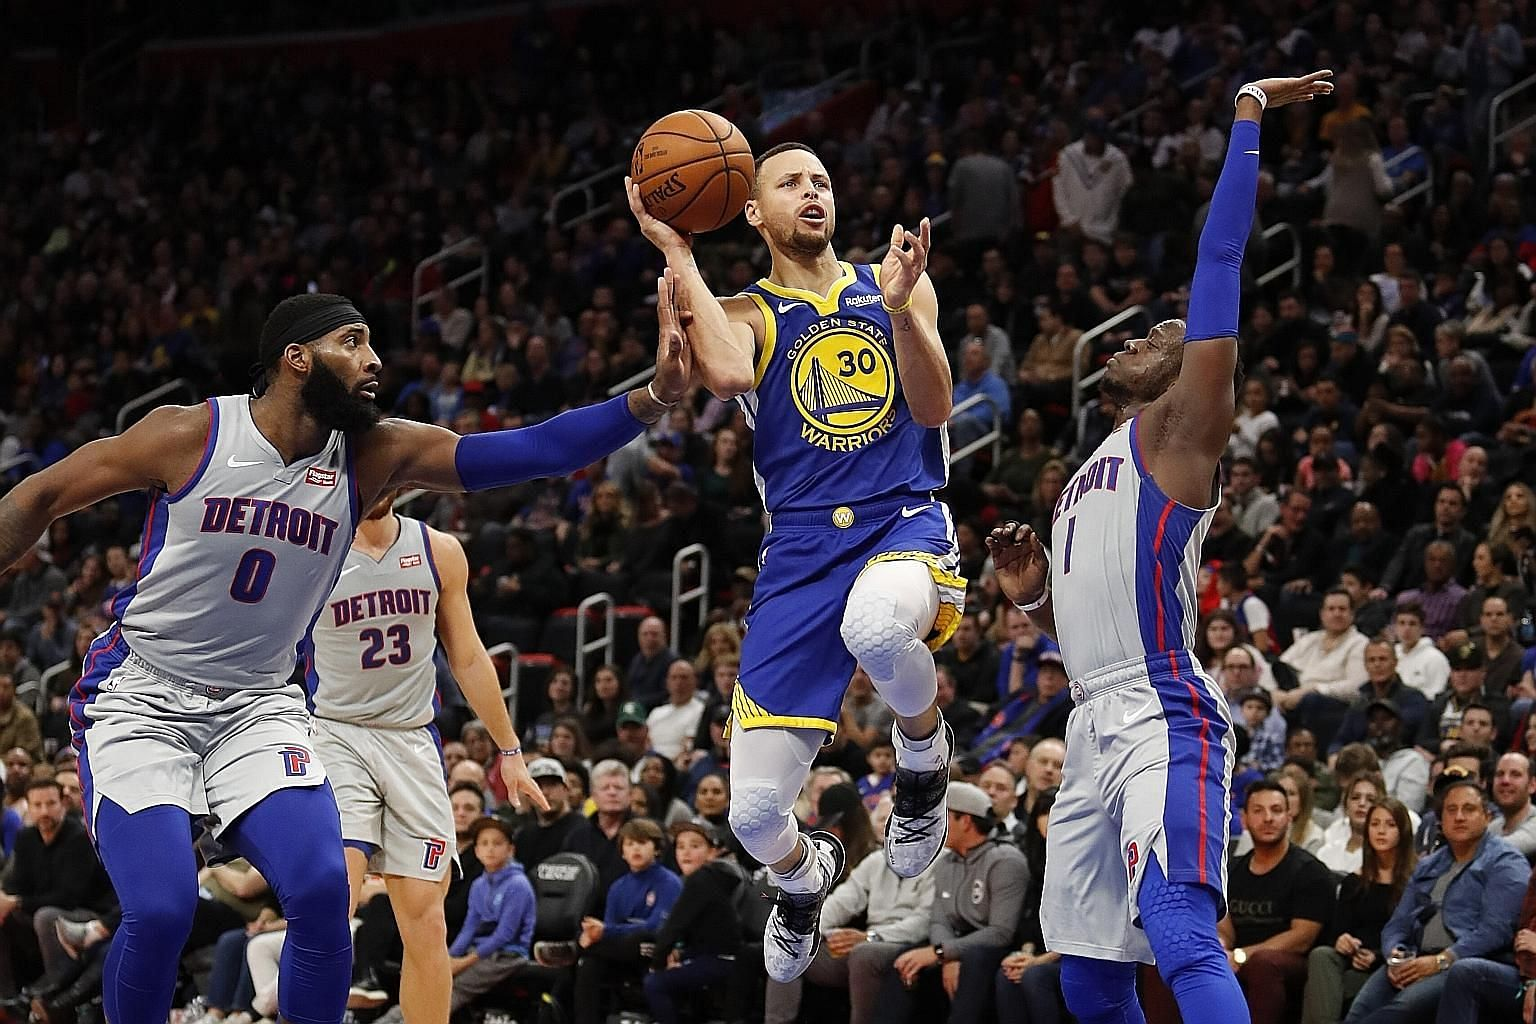 Above: Detroit Pistons forward Blake Griffin, who had a team-high 26 points, being feted by teammates after the hosts' 111-102 victory over Golden State Warriors on Saturday. Left: Stephen Curry attempting a shot, as centre Andre Drummond (No. 0) and